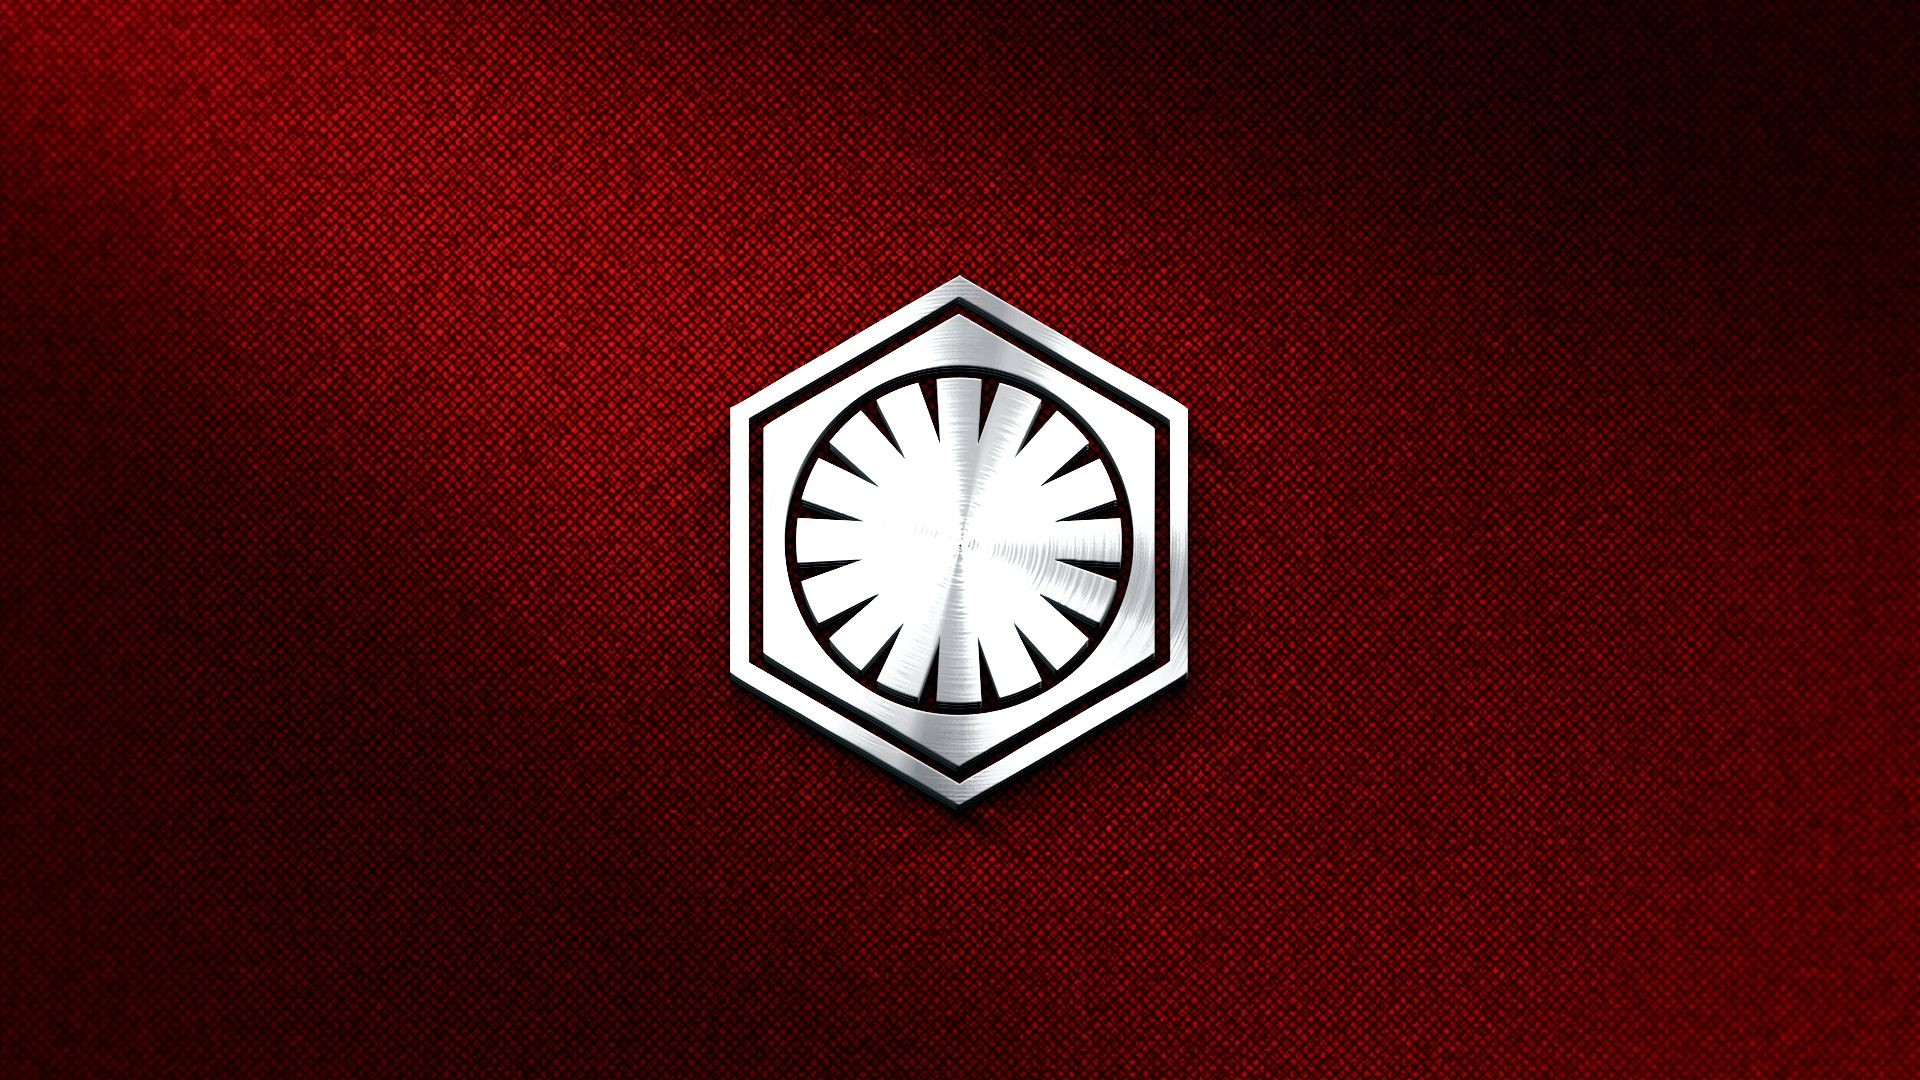 Star wars empire logo wallpaper 67 images 1920x1080 galactic republic symbol desktop wallpaper by swmand4 on deviantart buycottarizona Choice Image